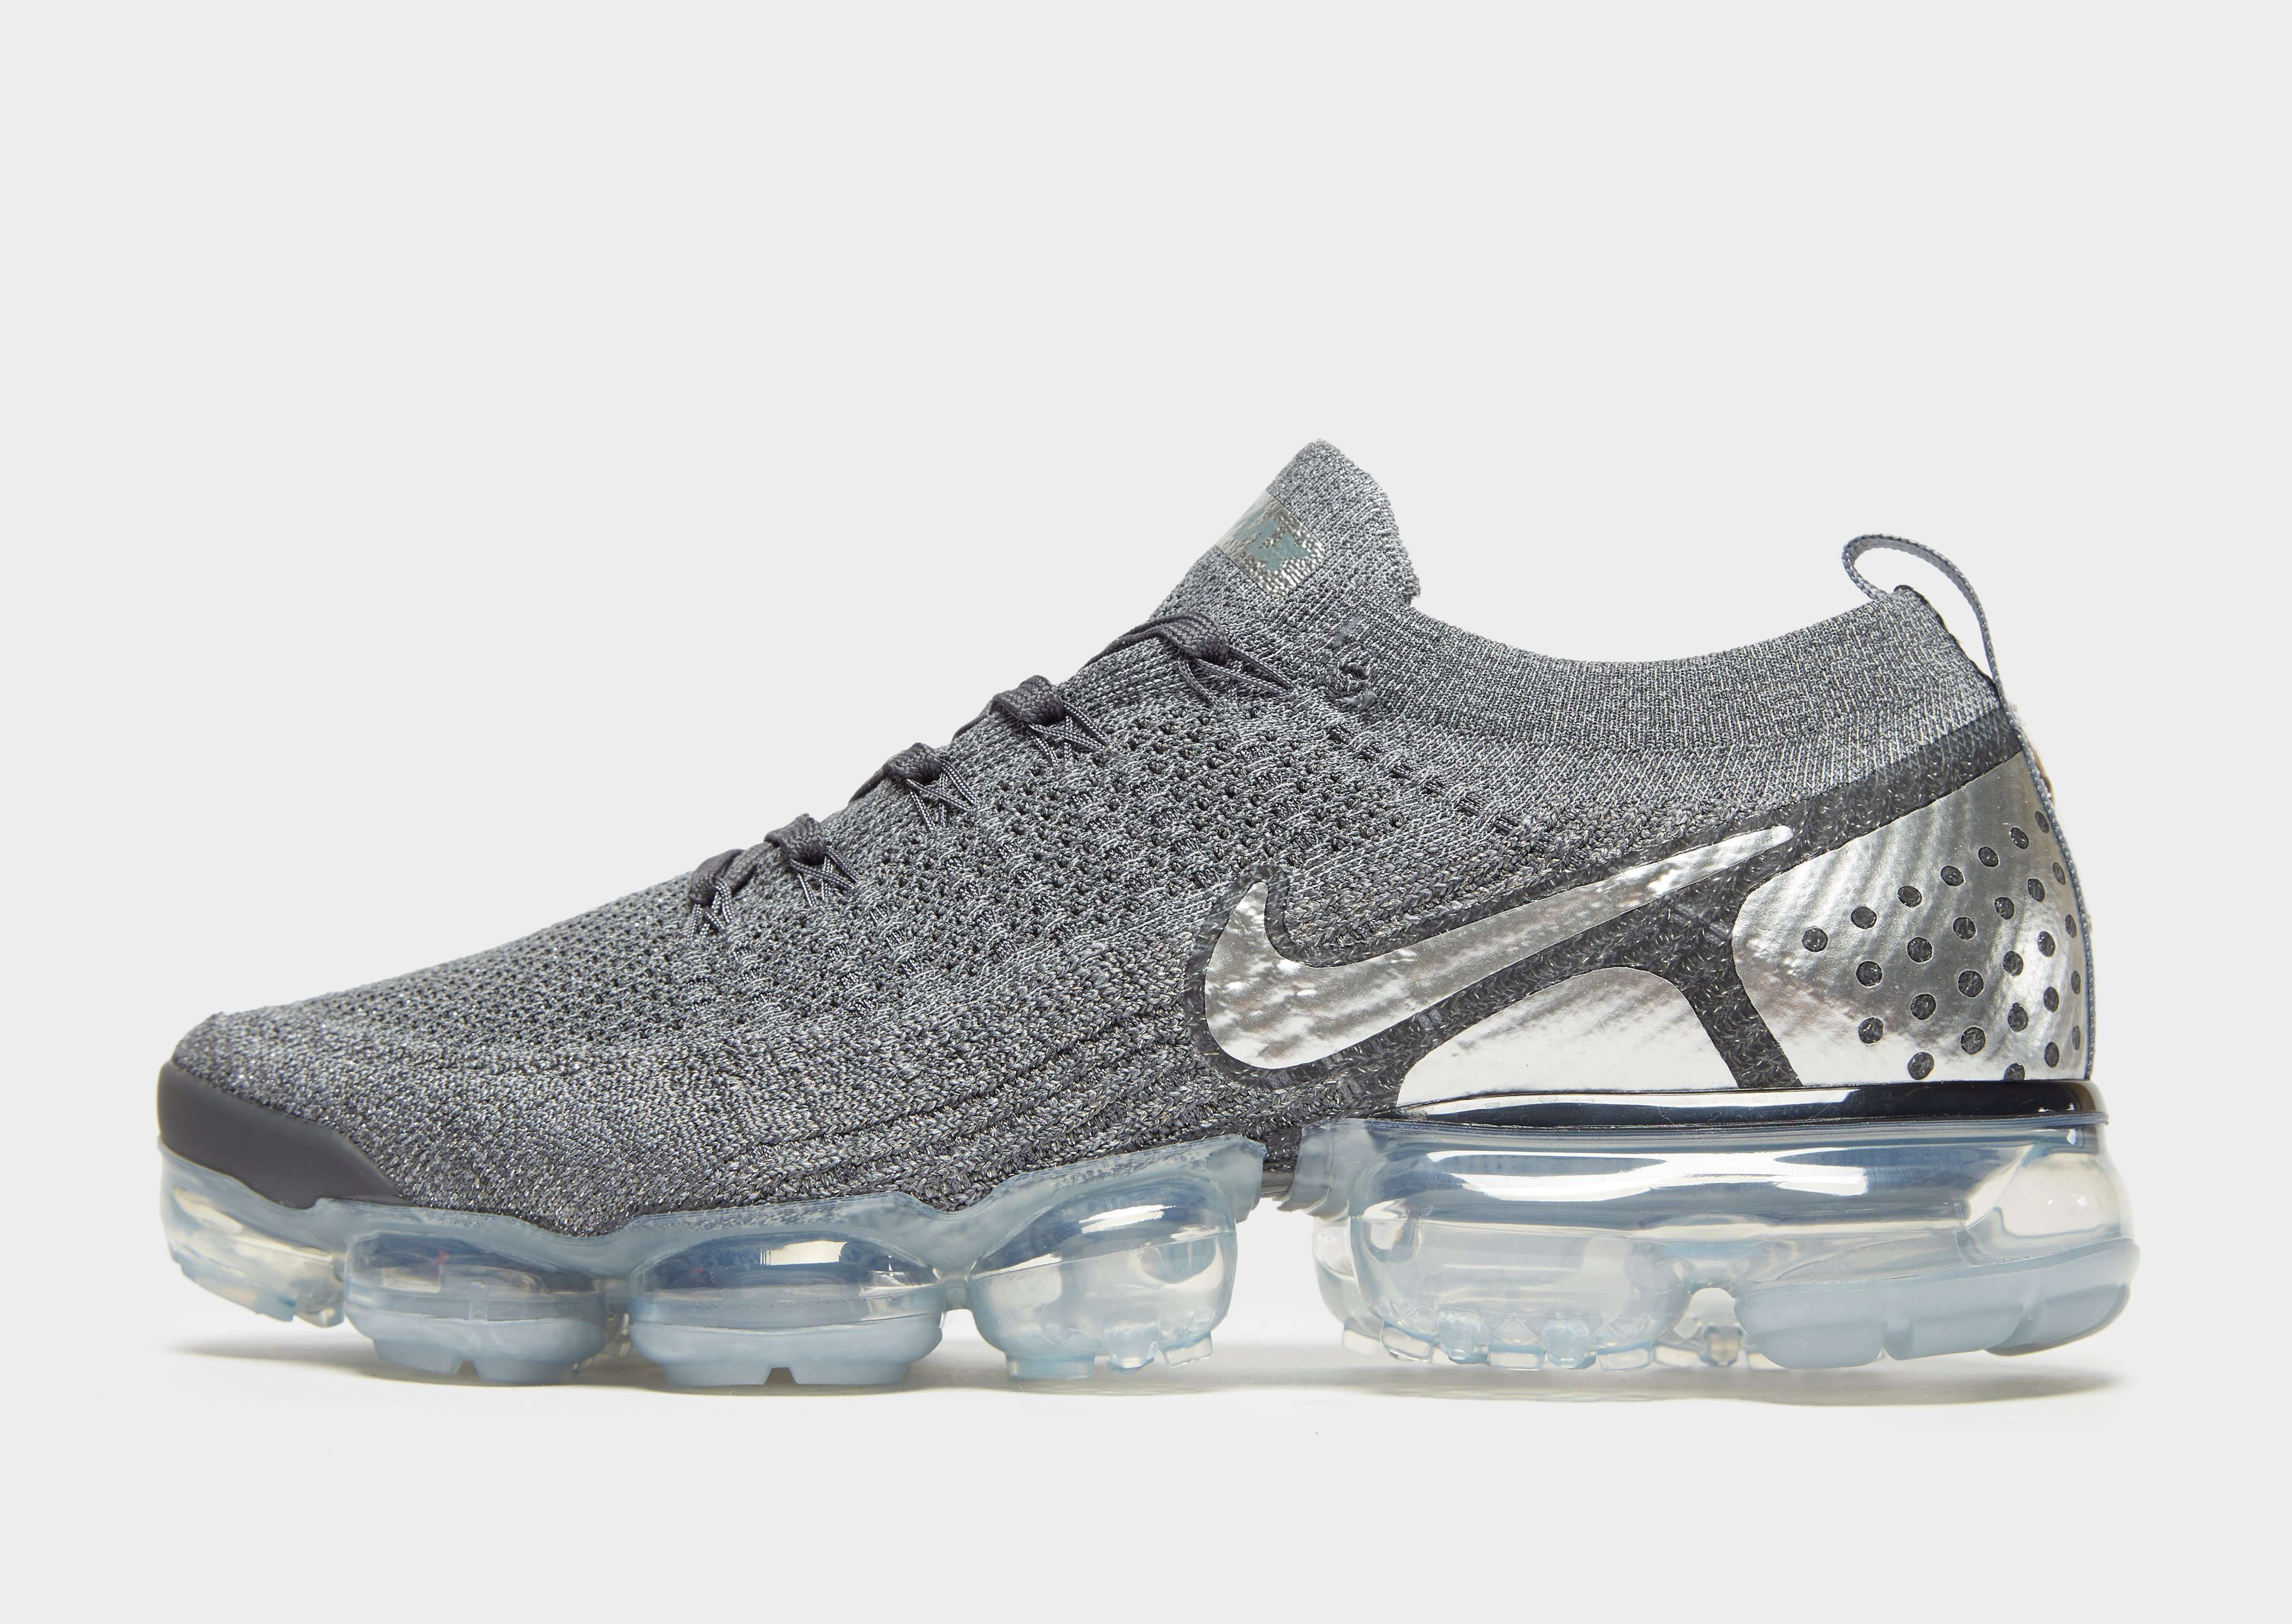 desnudo Penetración Custodio  Nike Air VaporMax Flyknit 2 - Shop online for Nike Air VaporMax Flyknit 2  with JD Sports, the UK's leading sports fash… | Sneakers nike, Nike air,  Nike air vapormax